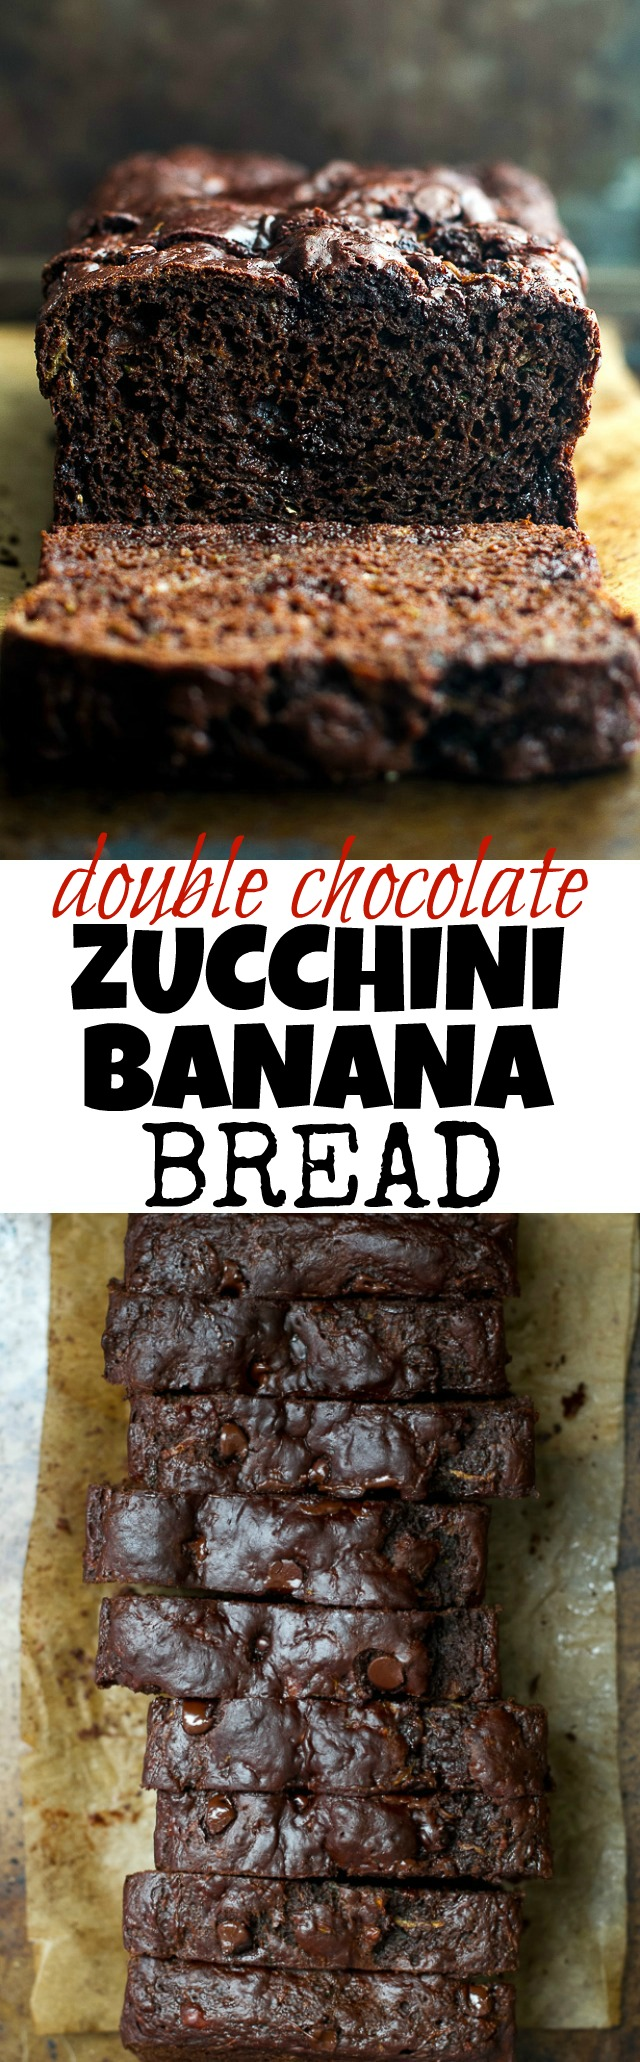 Double Chocolate Zucchini Banana Bread - zucchini, bananas, and Greek yogurt keep this loaf extra soft without the need for any added butter or oil! This bread is so tender and flavourful, you'd never guess it's healthy! | runningwithspoons.com #recipe #desserts